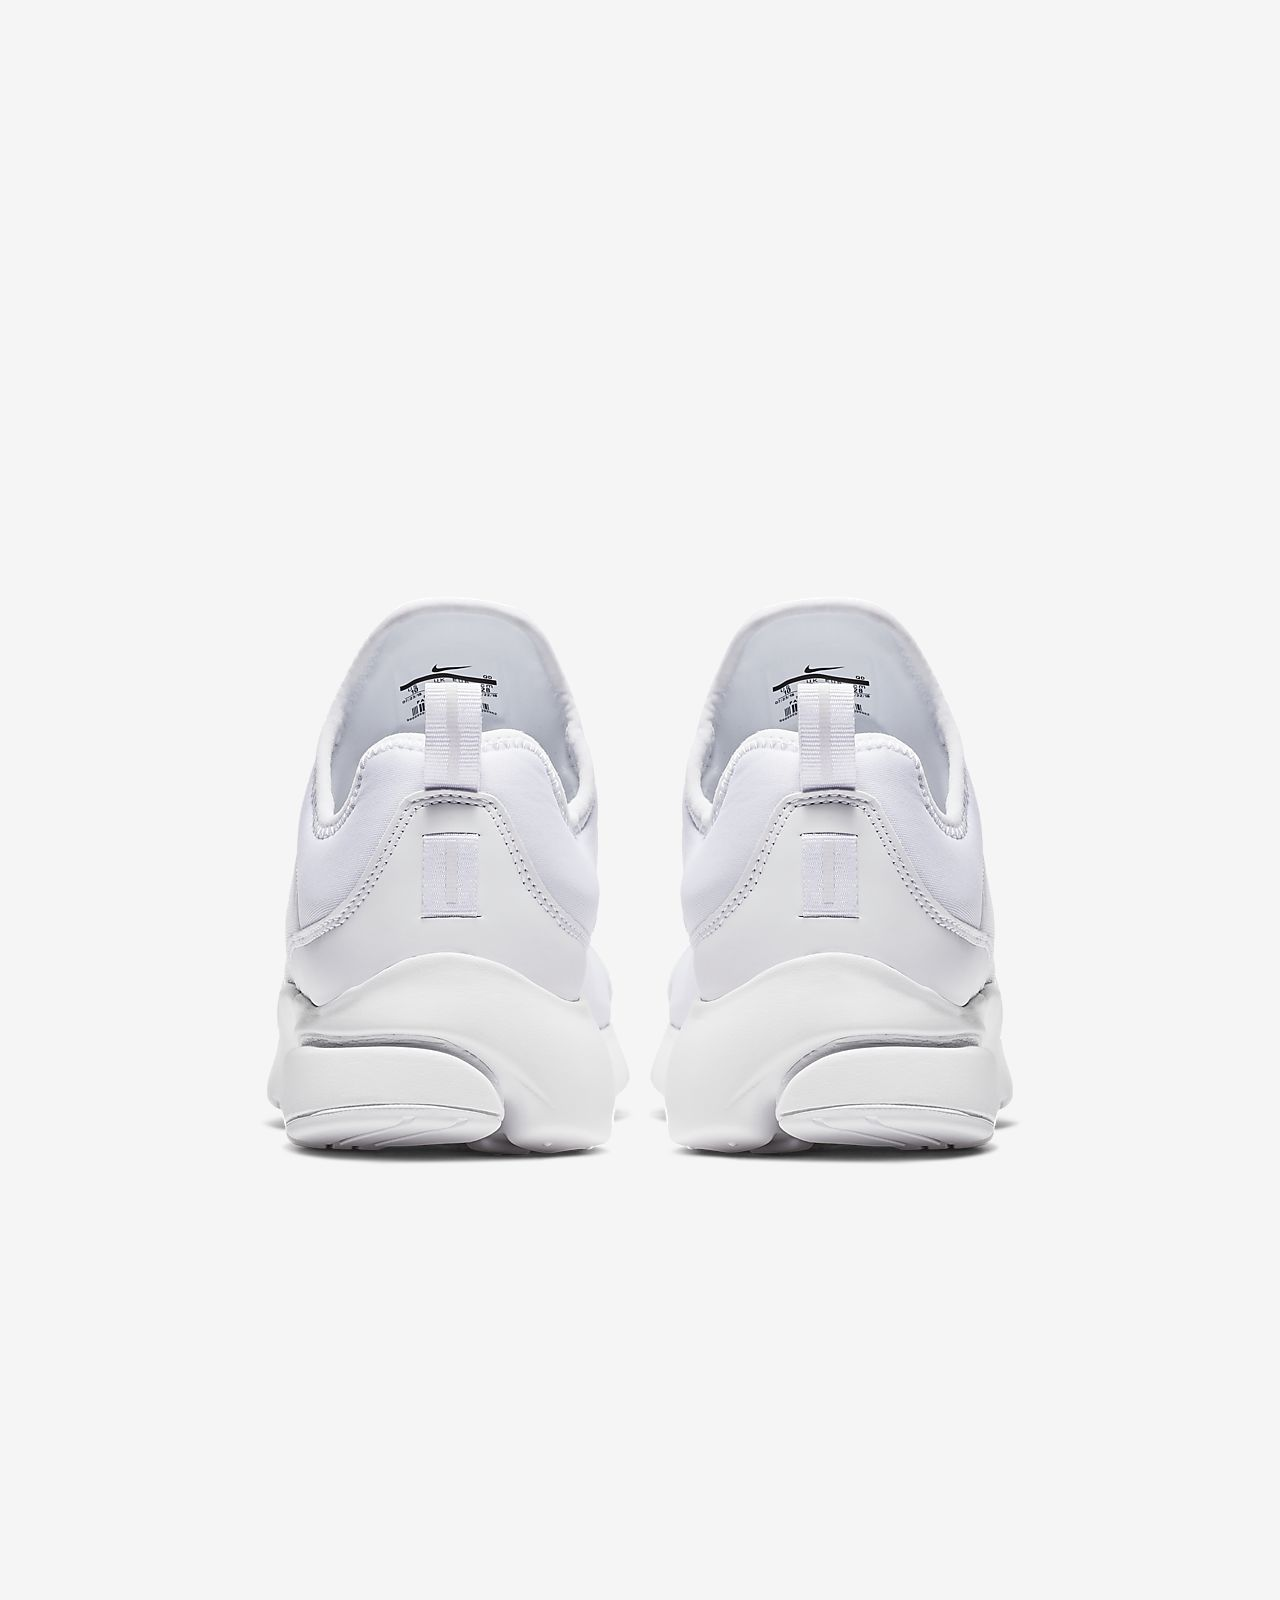 972a255b6f77a Nike Presto Fly World Men s Shoe. Nike.com AU